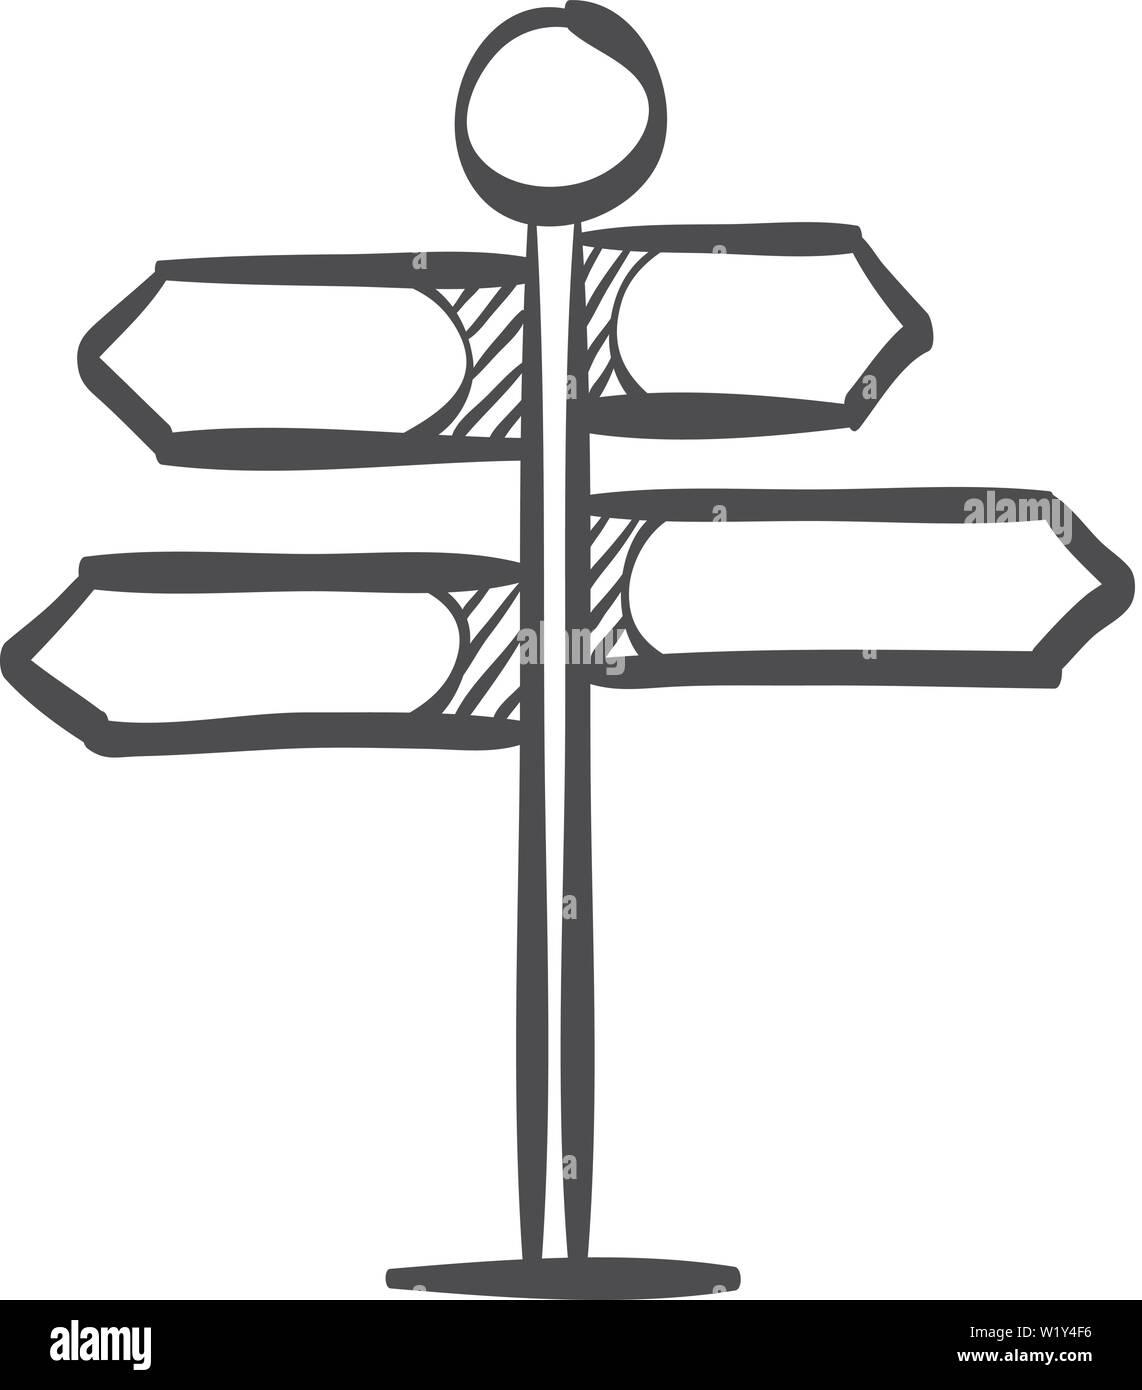 Road sign post icon in doodle sketch lines. Travel destination journey holiday - Stock Image